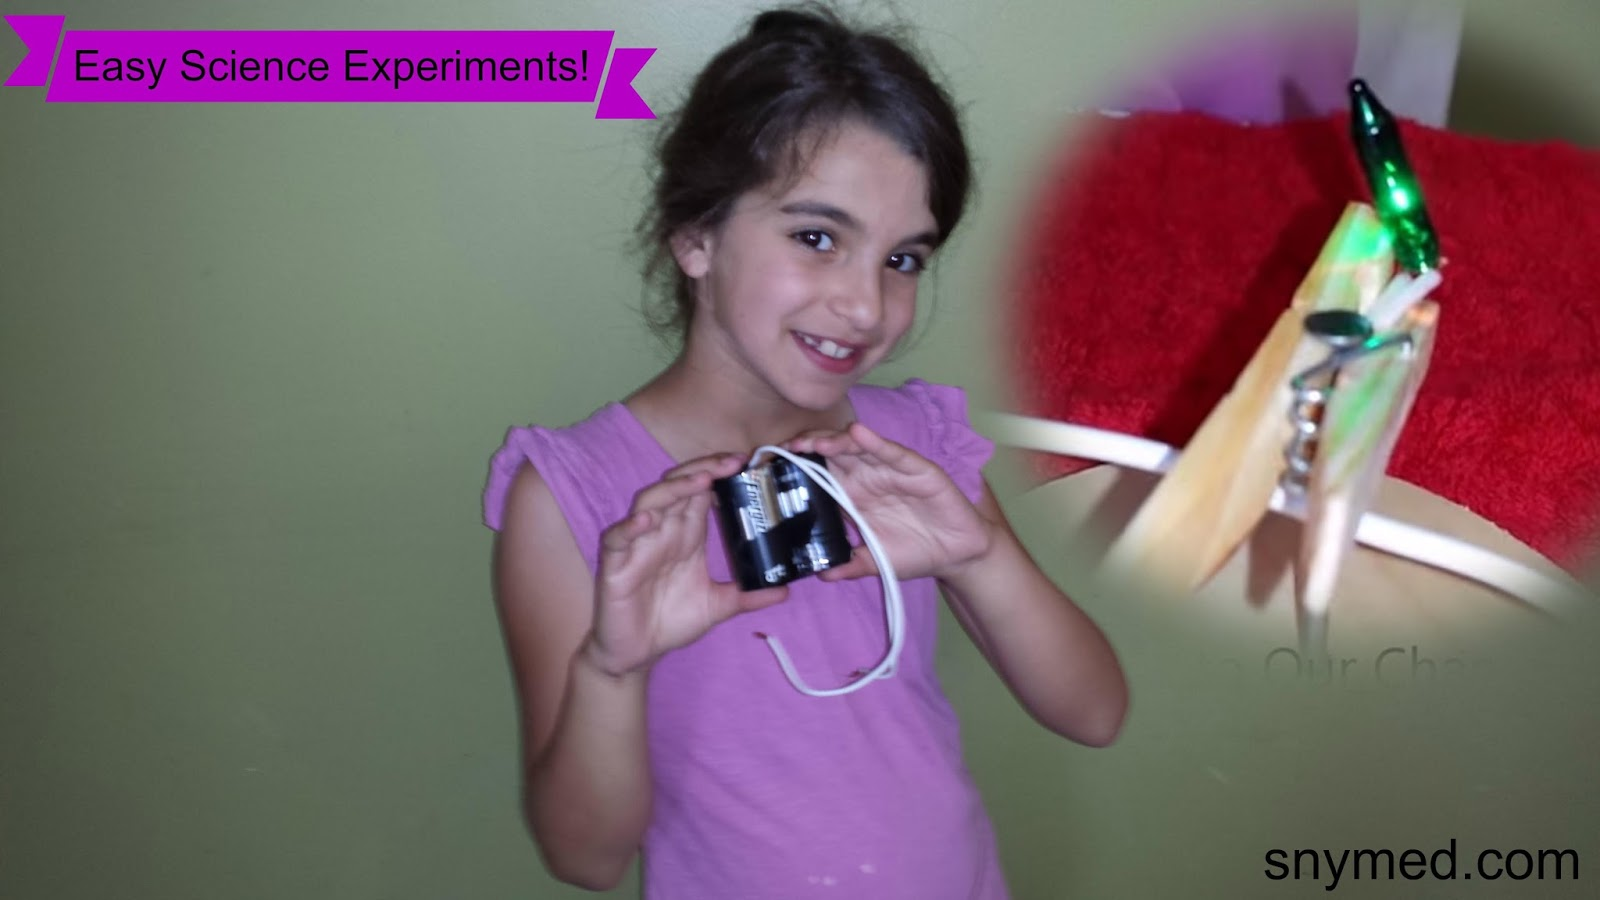 snymed: Easy Science Experiments! Do At Home or In the